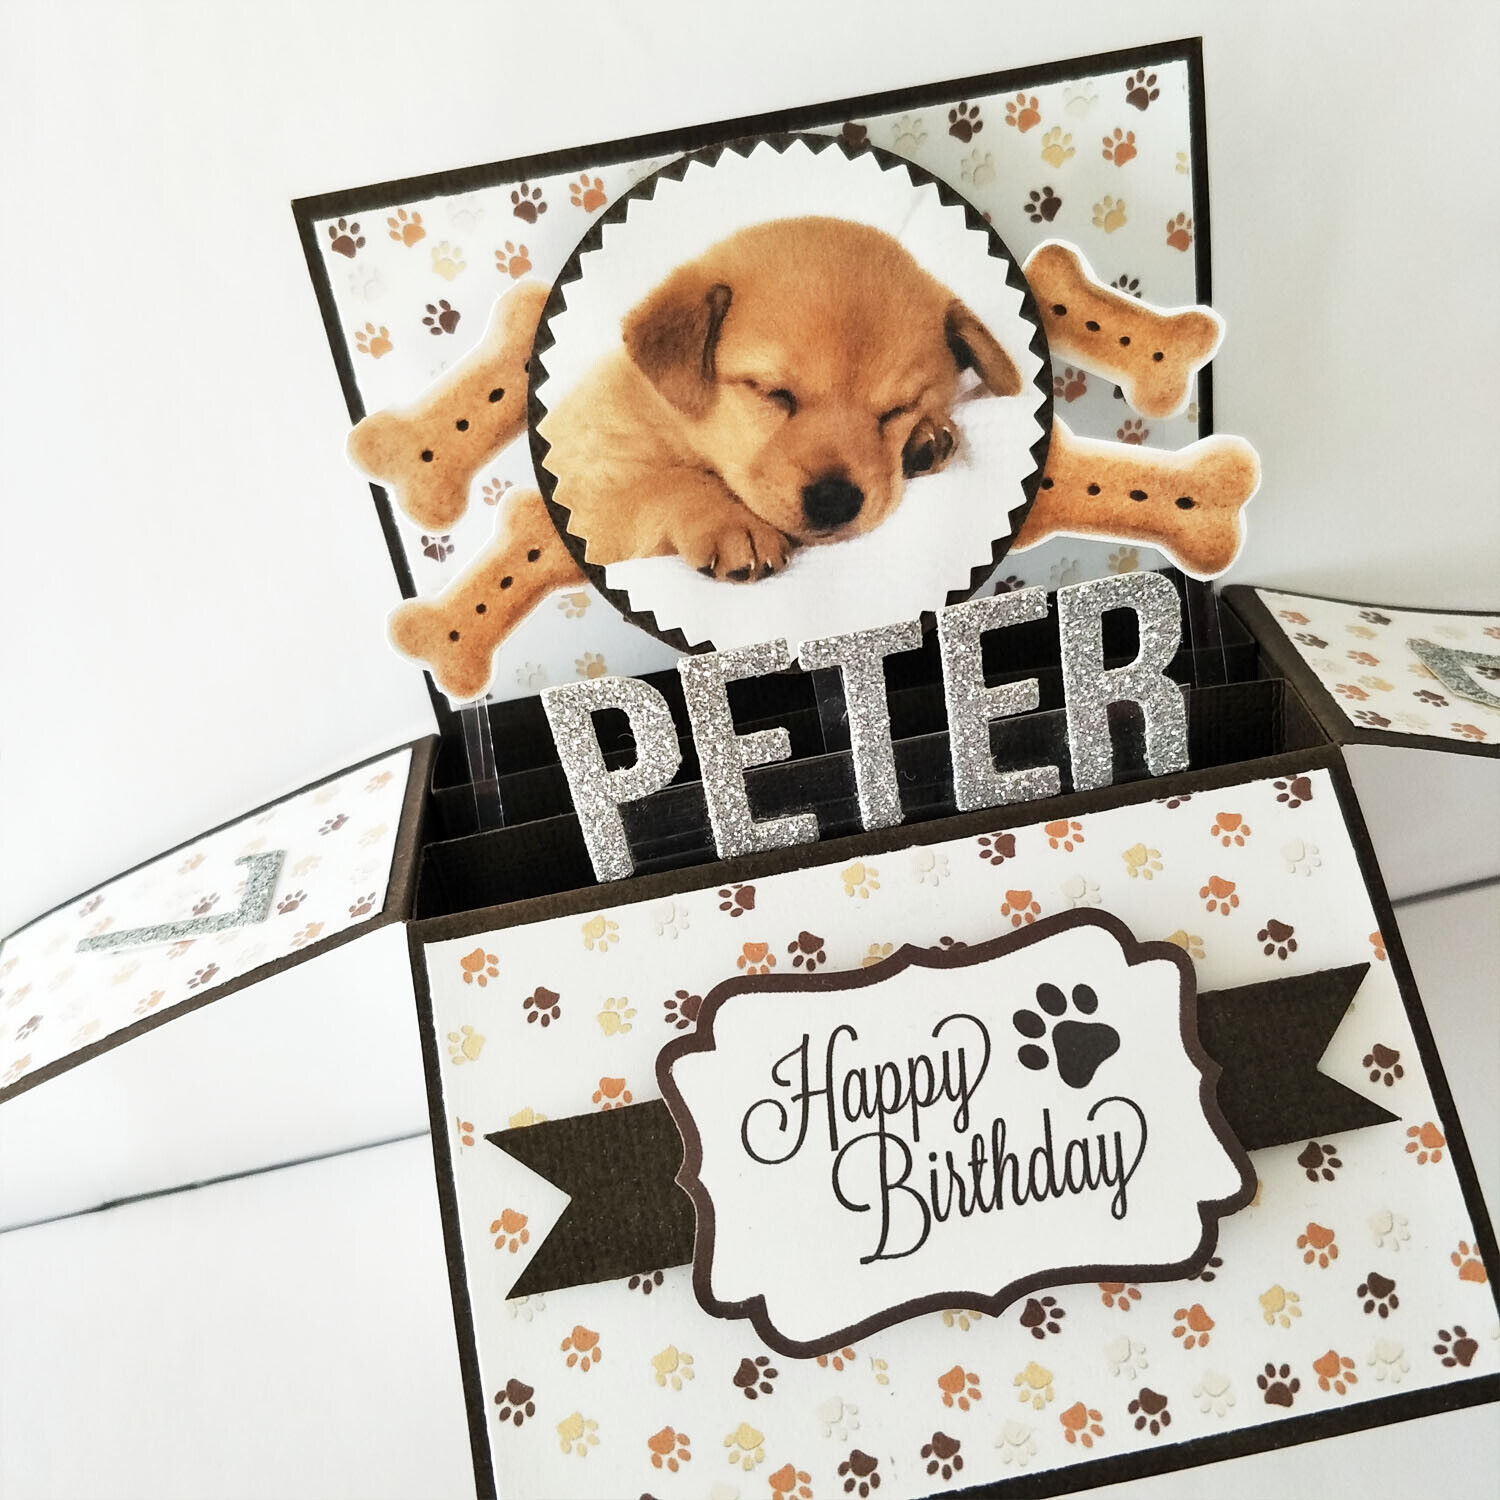 Handmade Name & Age Personalized birthday card, dog birthday card dog puppy card - Sleeping Dog